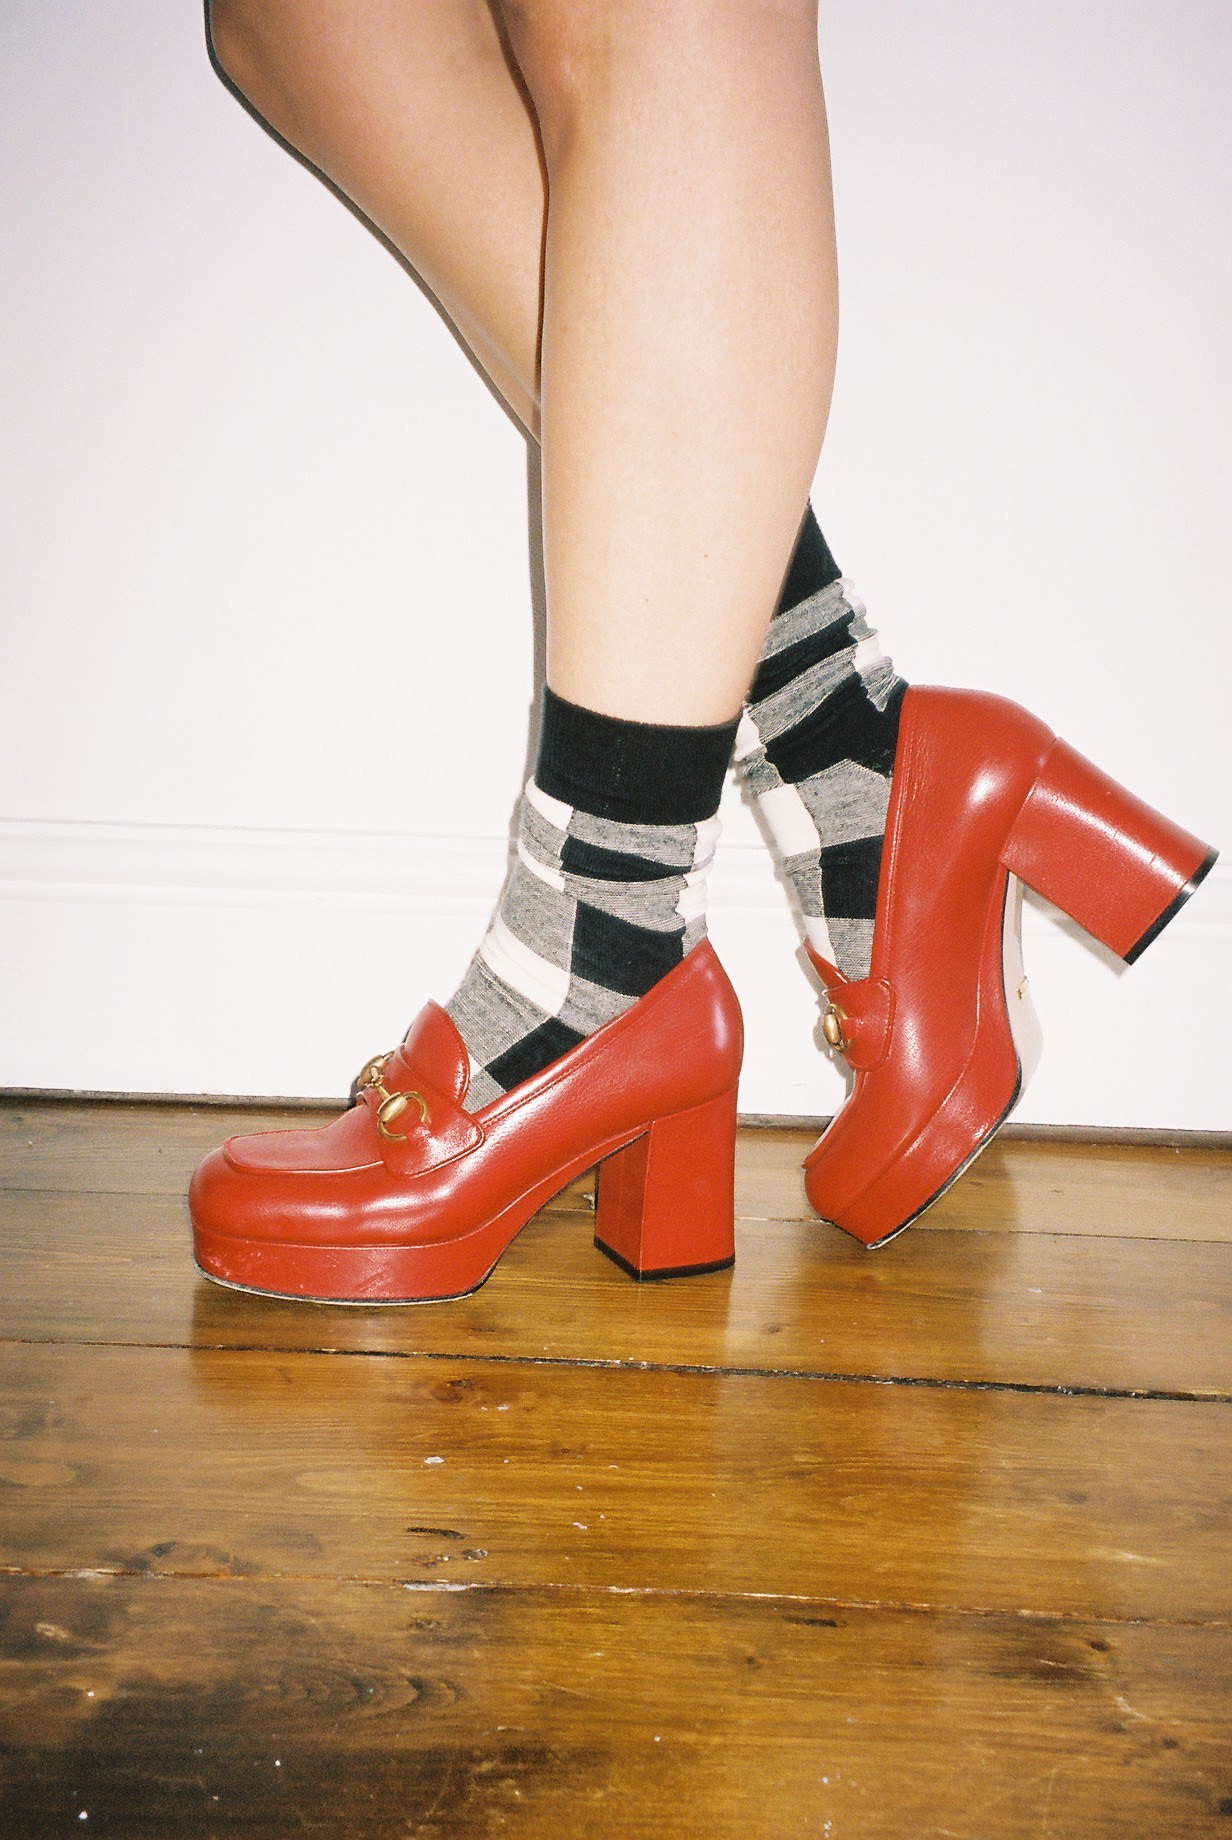 STYLING HEELS AND SOCKS